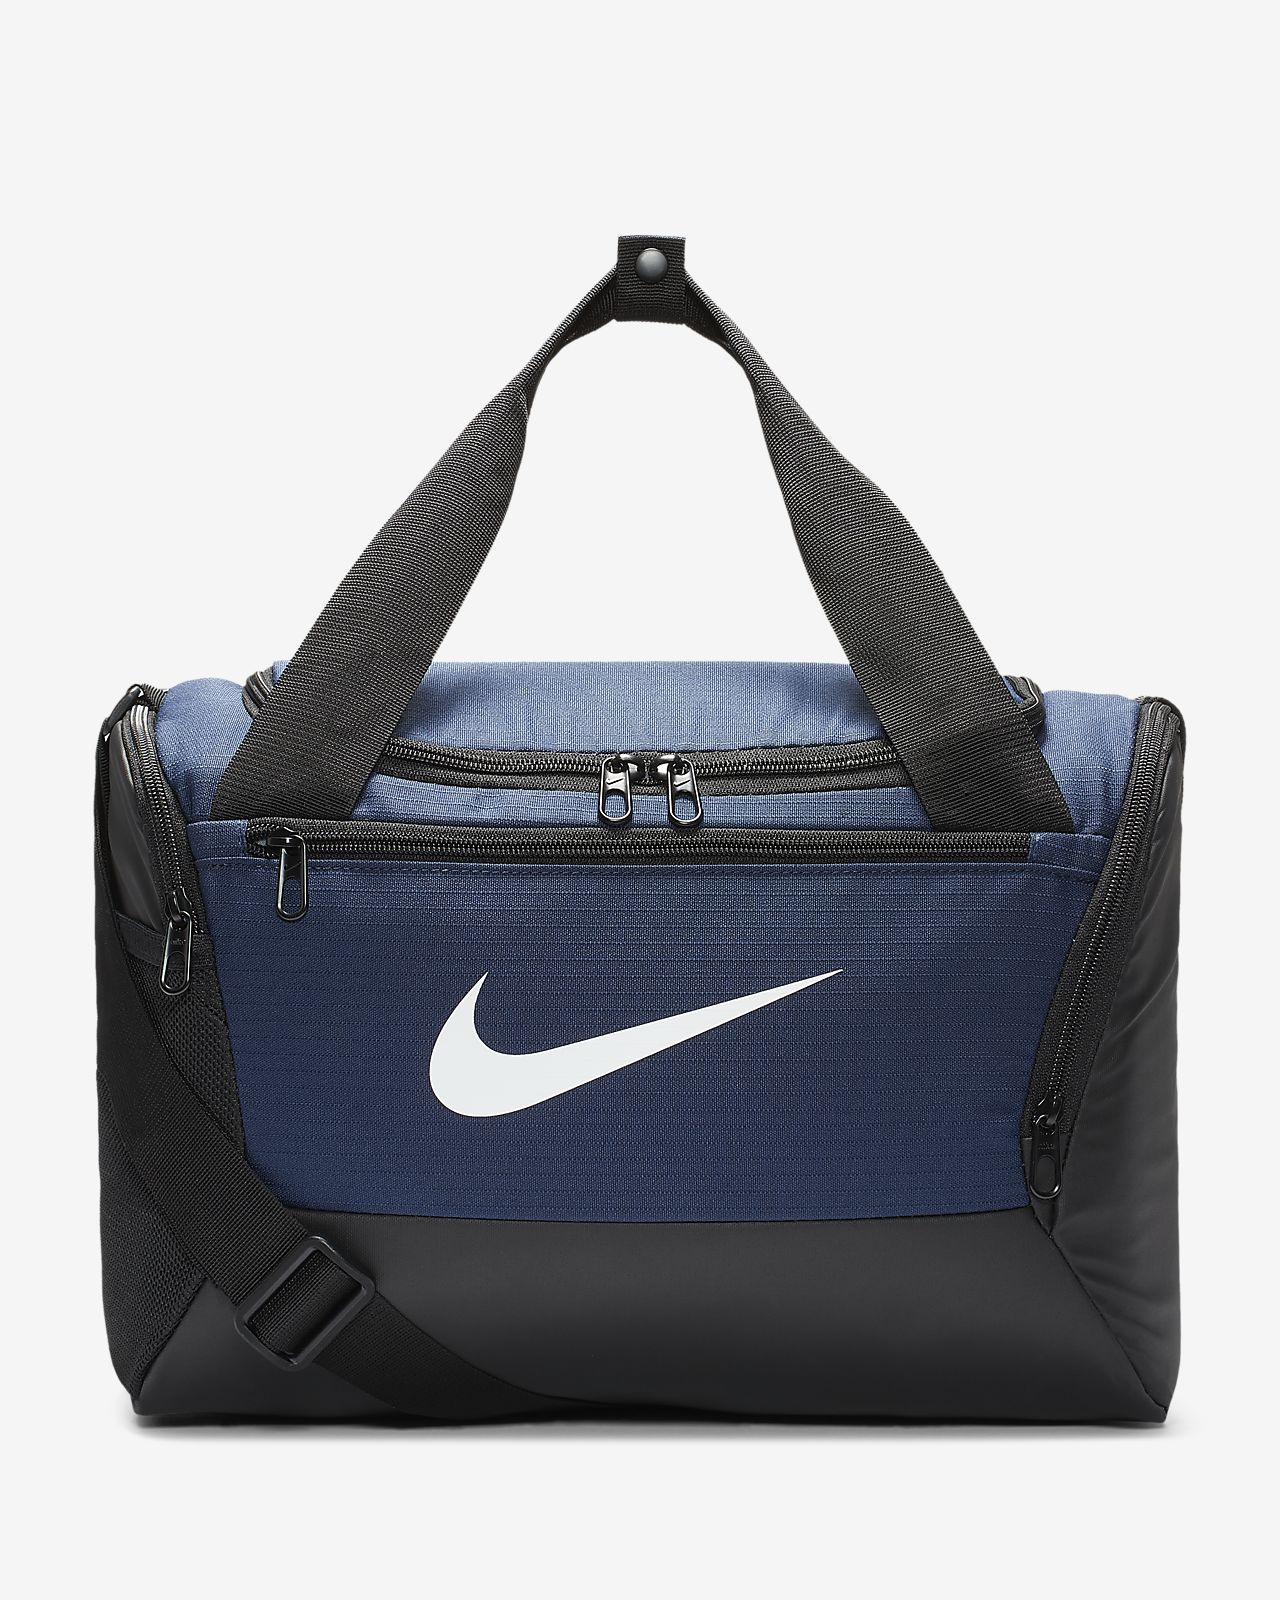 Buy Nike Brasilia (Extra Small) Duffel Bag From Nike in Blue